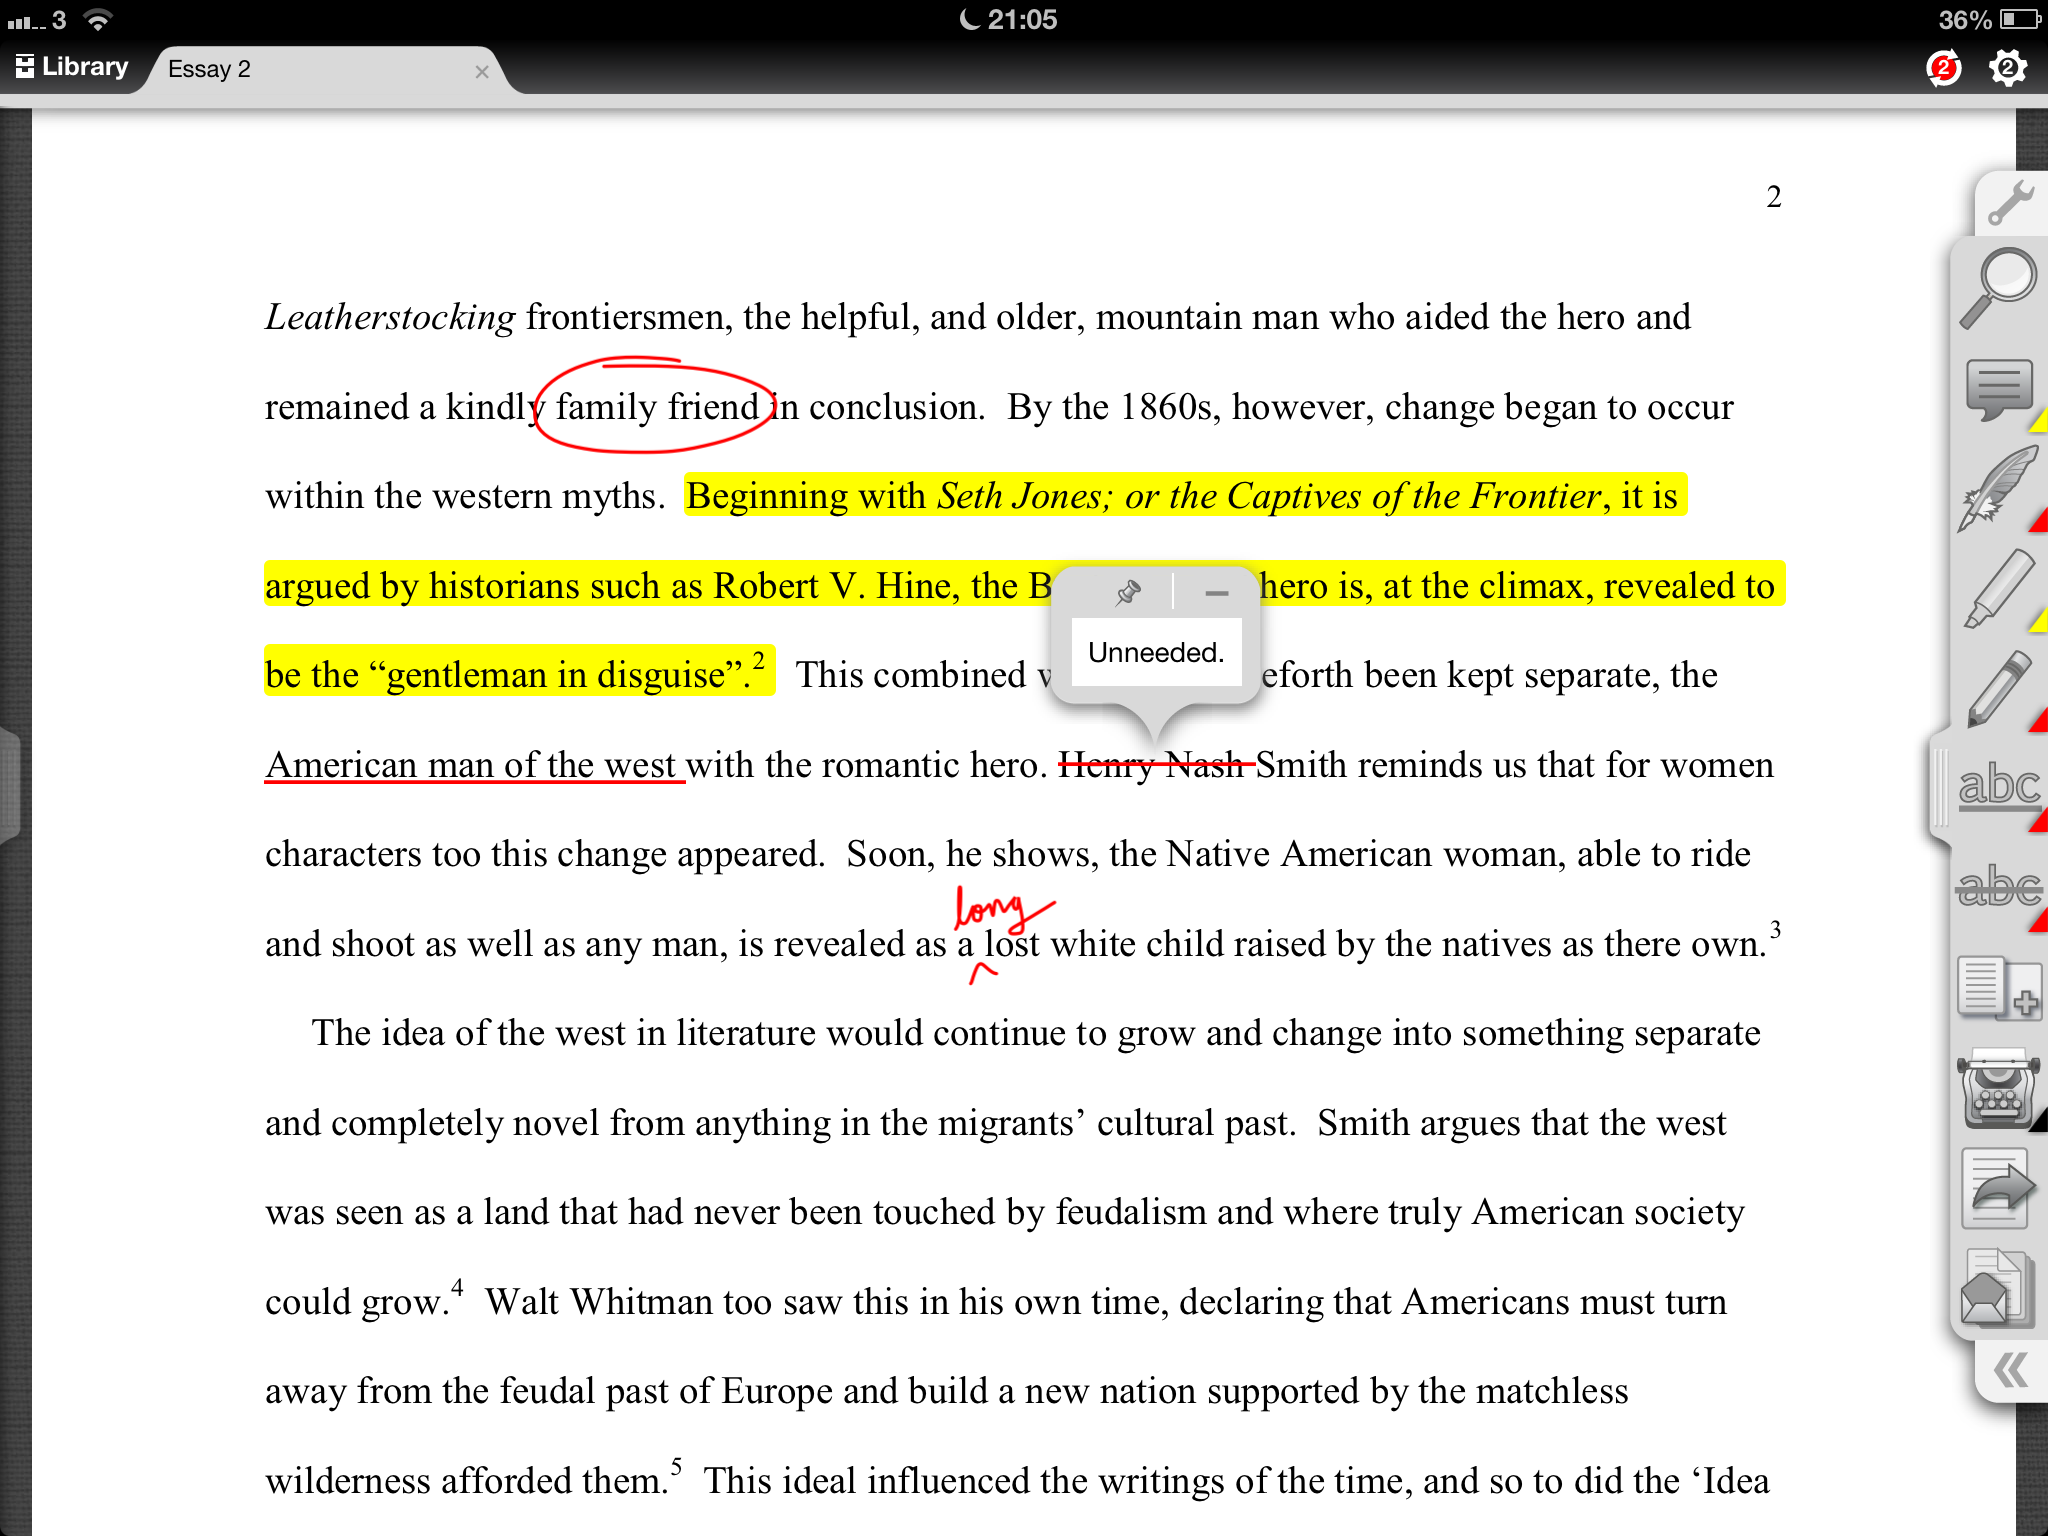 001 How To Annotate An Essay Wondrous A Movie In Critical Full